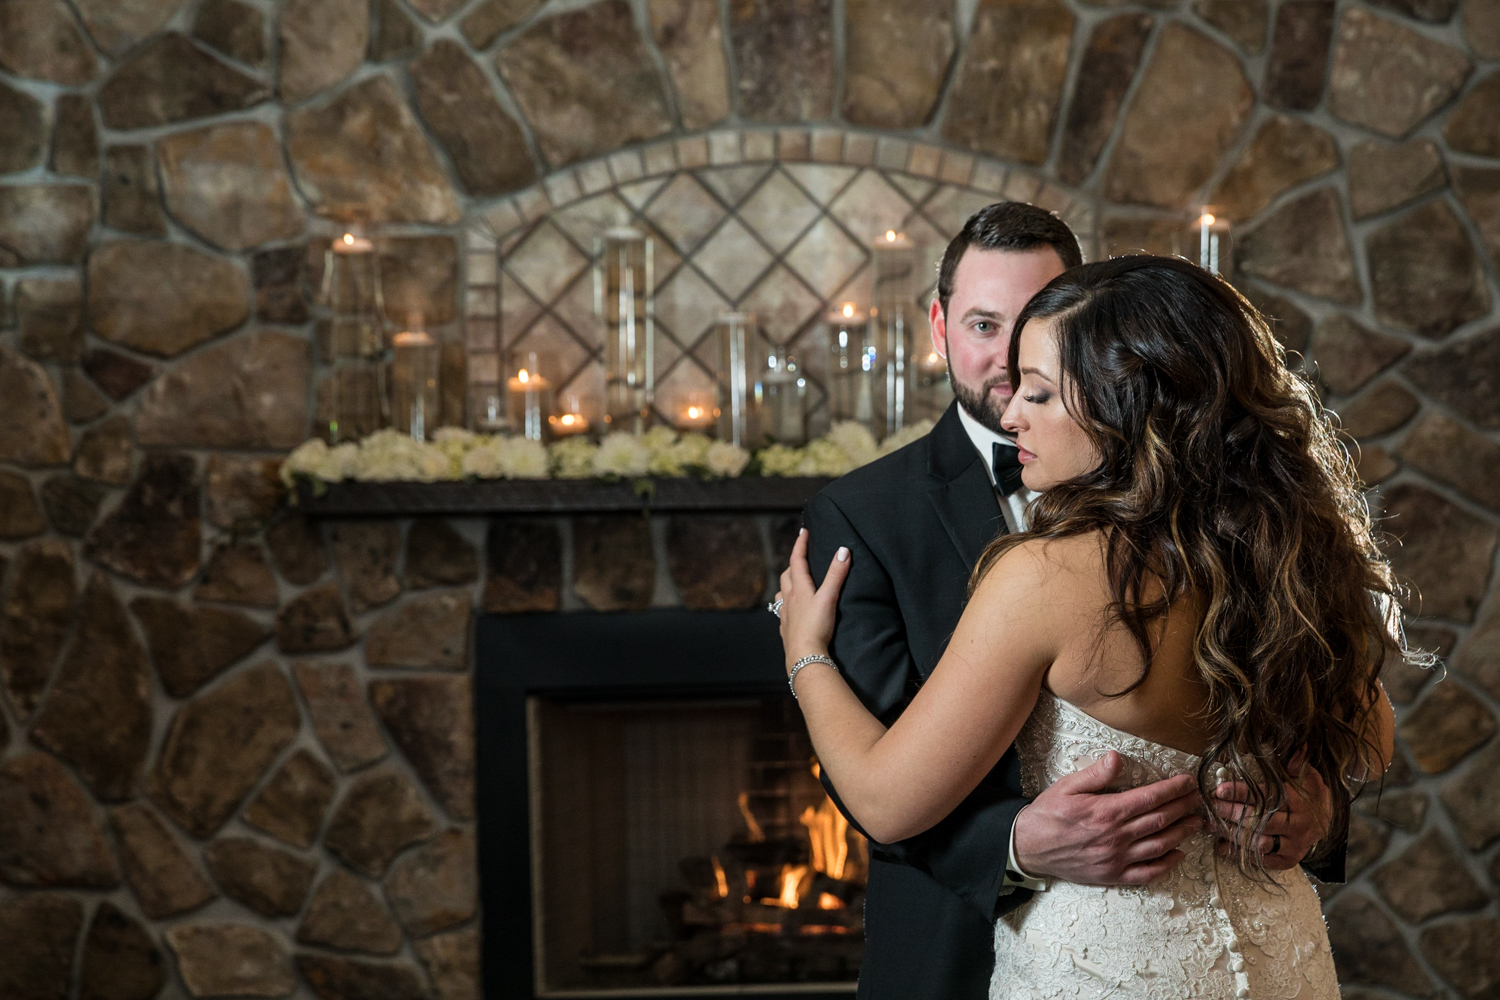 The-Log-Cabin-Wedding-Delaney-House-Wedding-Four-Wings-Photography-31.jpg